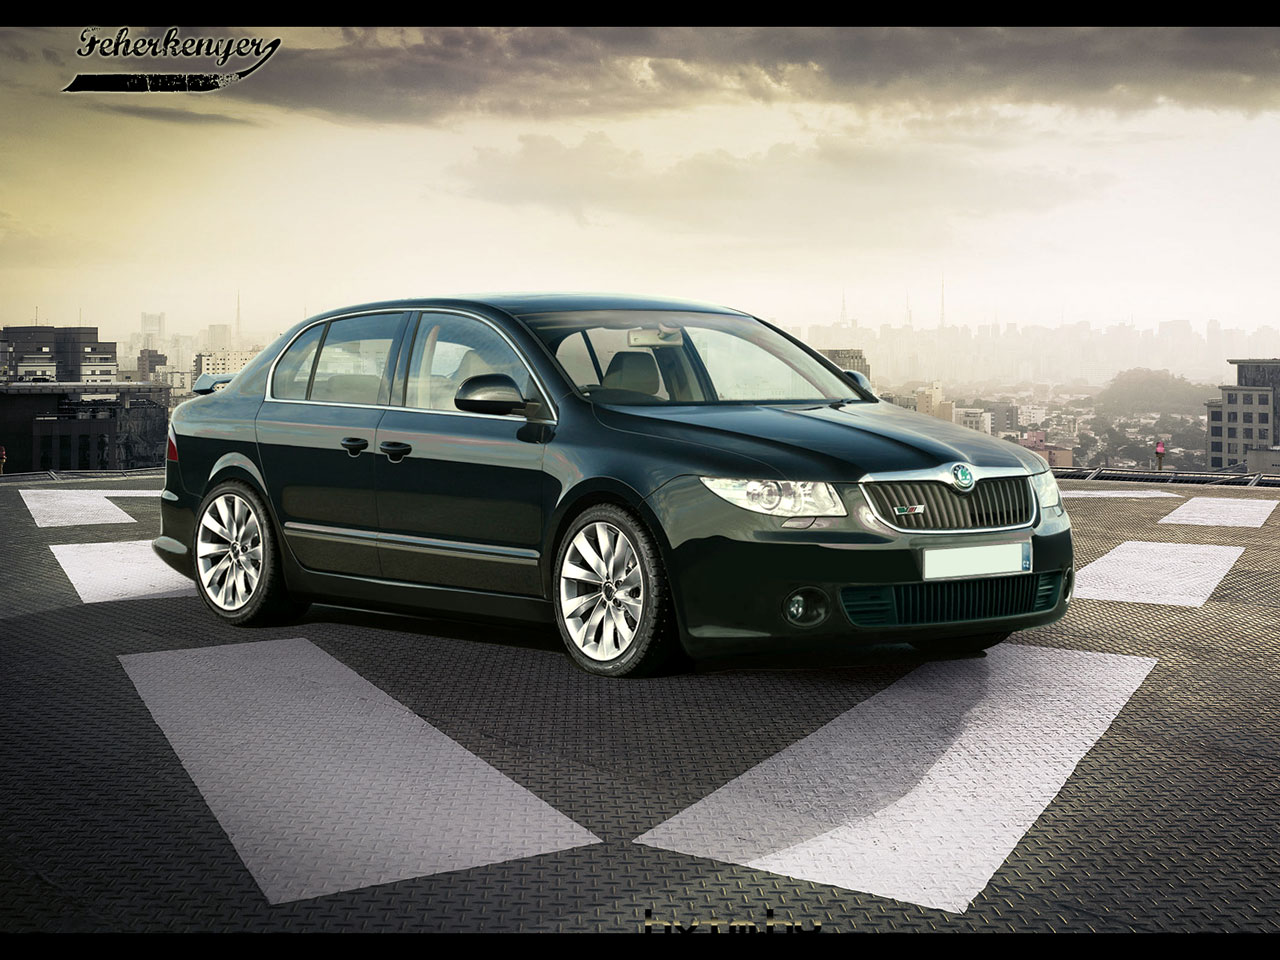 skoda superb ii rs of slechts een droom. Black Bedroom Furniture Sets. Home Design Ideas